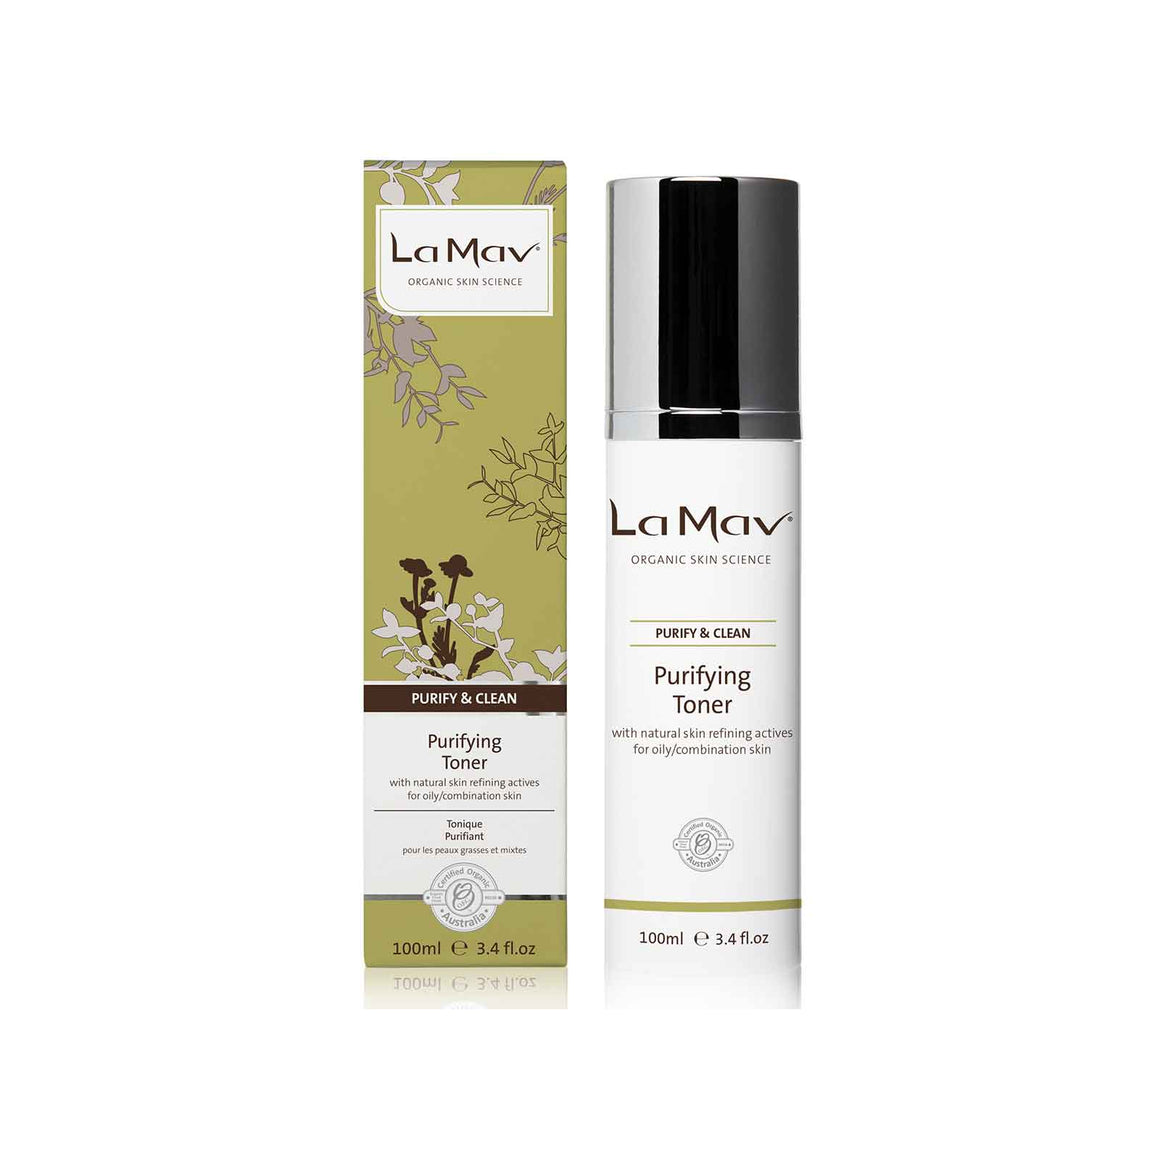 La Mav Purifying Dual Purpose Toner - 100ml